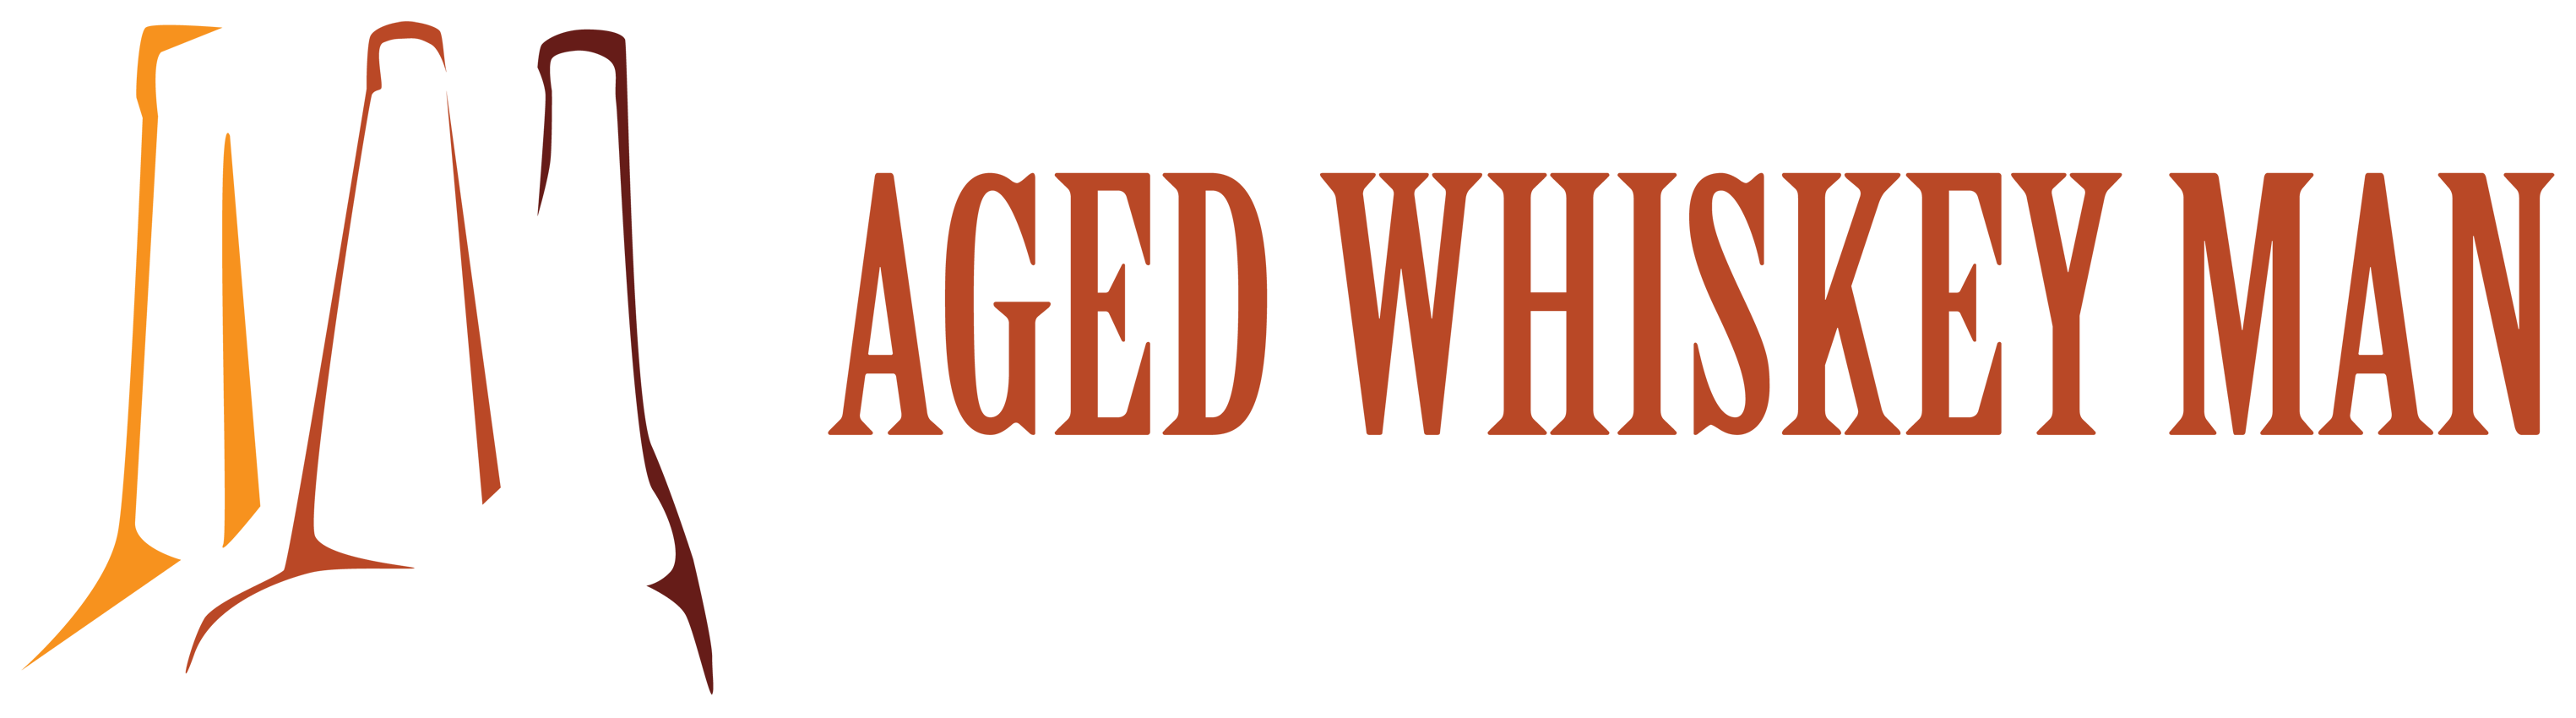 Aged Whiskey Man logo